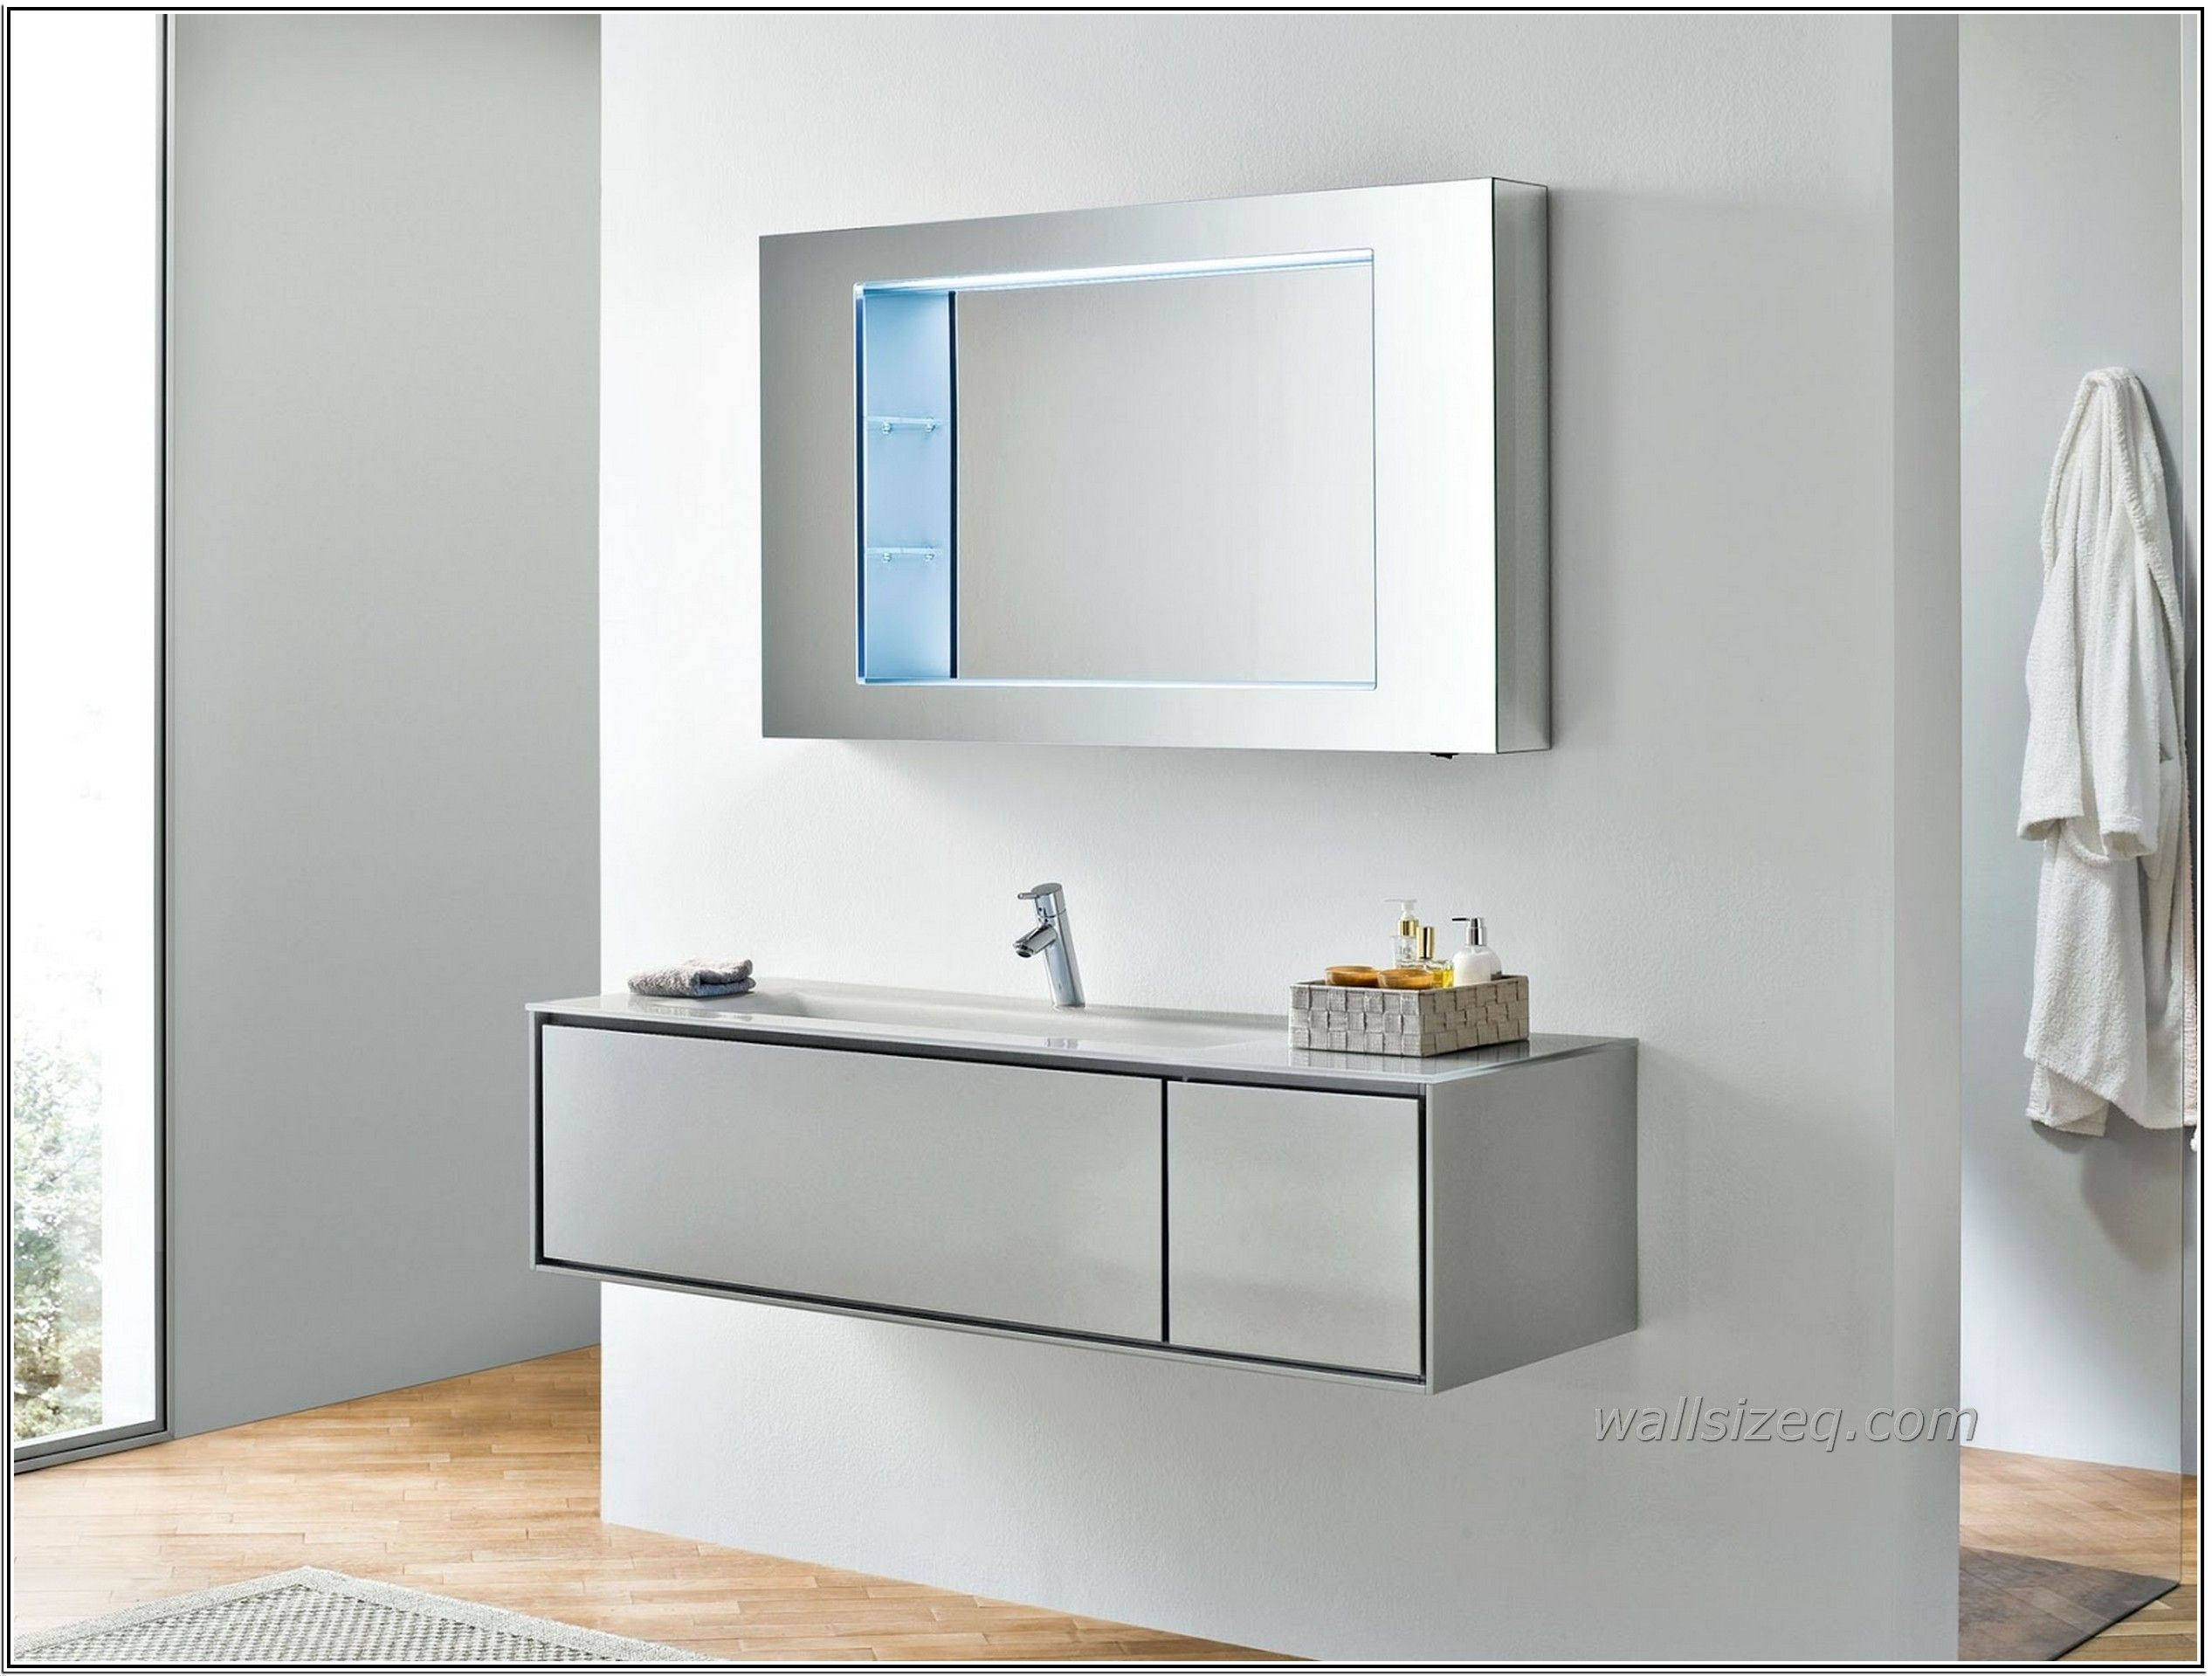 Amazing Bathroom Cabinets Ideas Modern Mirror Silver Border Laminate ...